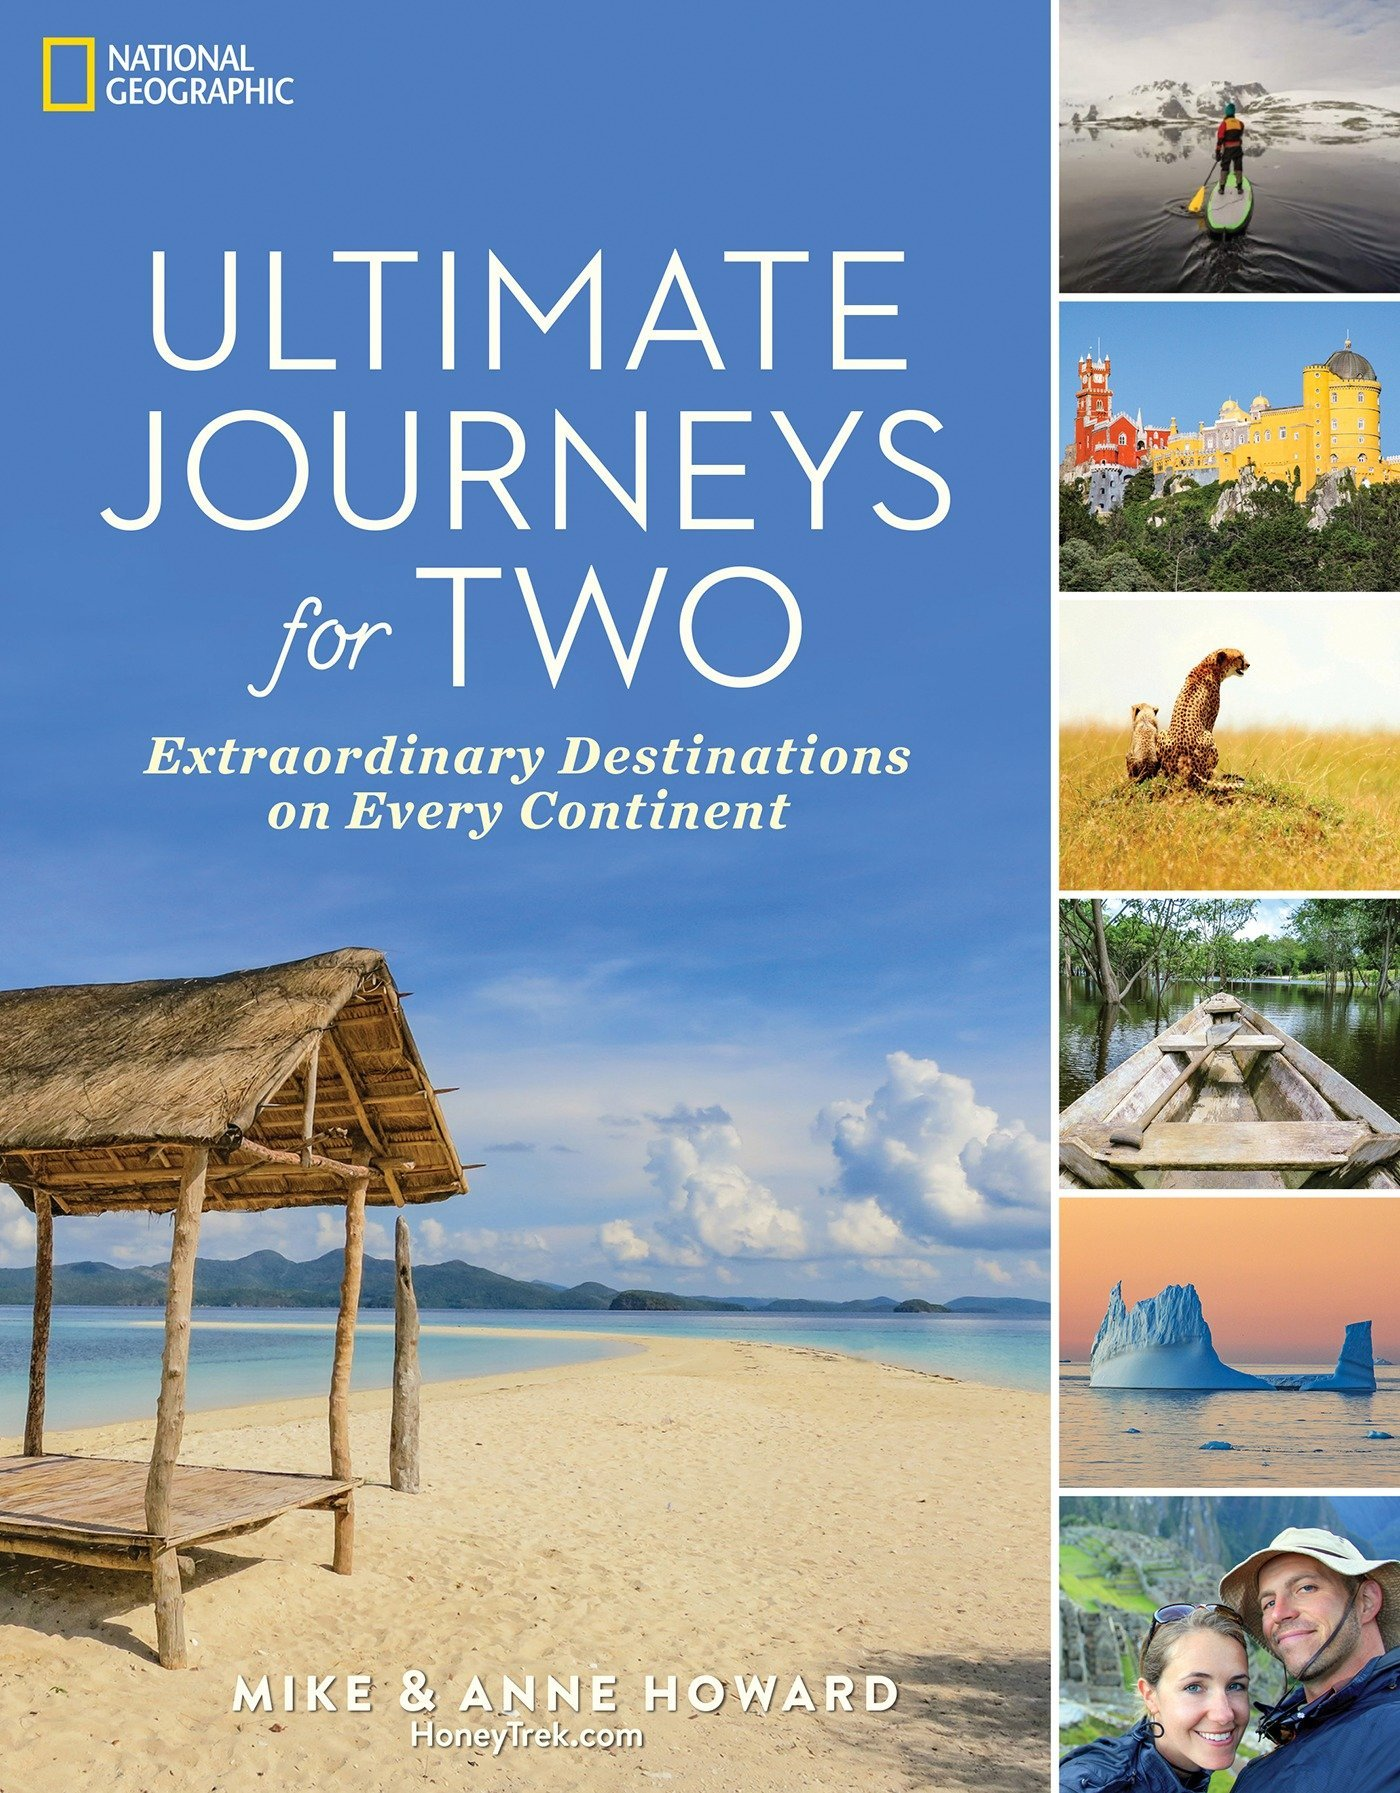 Ultimate Journeys for Two: Extraordinary Destinations on Every Continent by NATIONAL GEOGRAPHIC